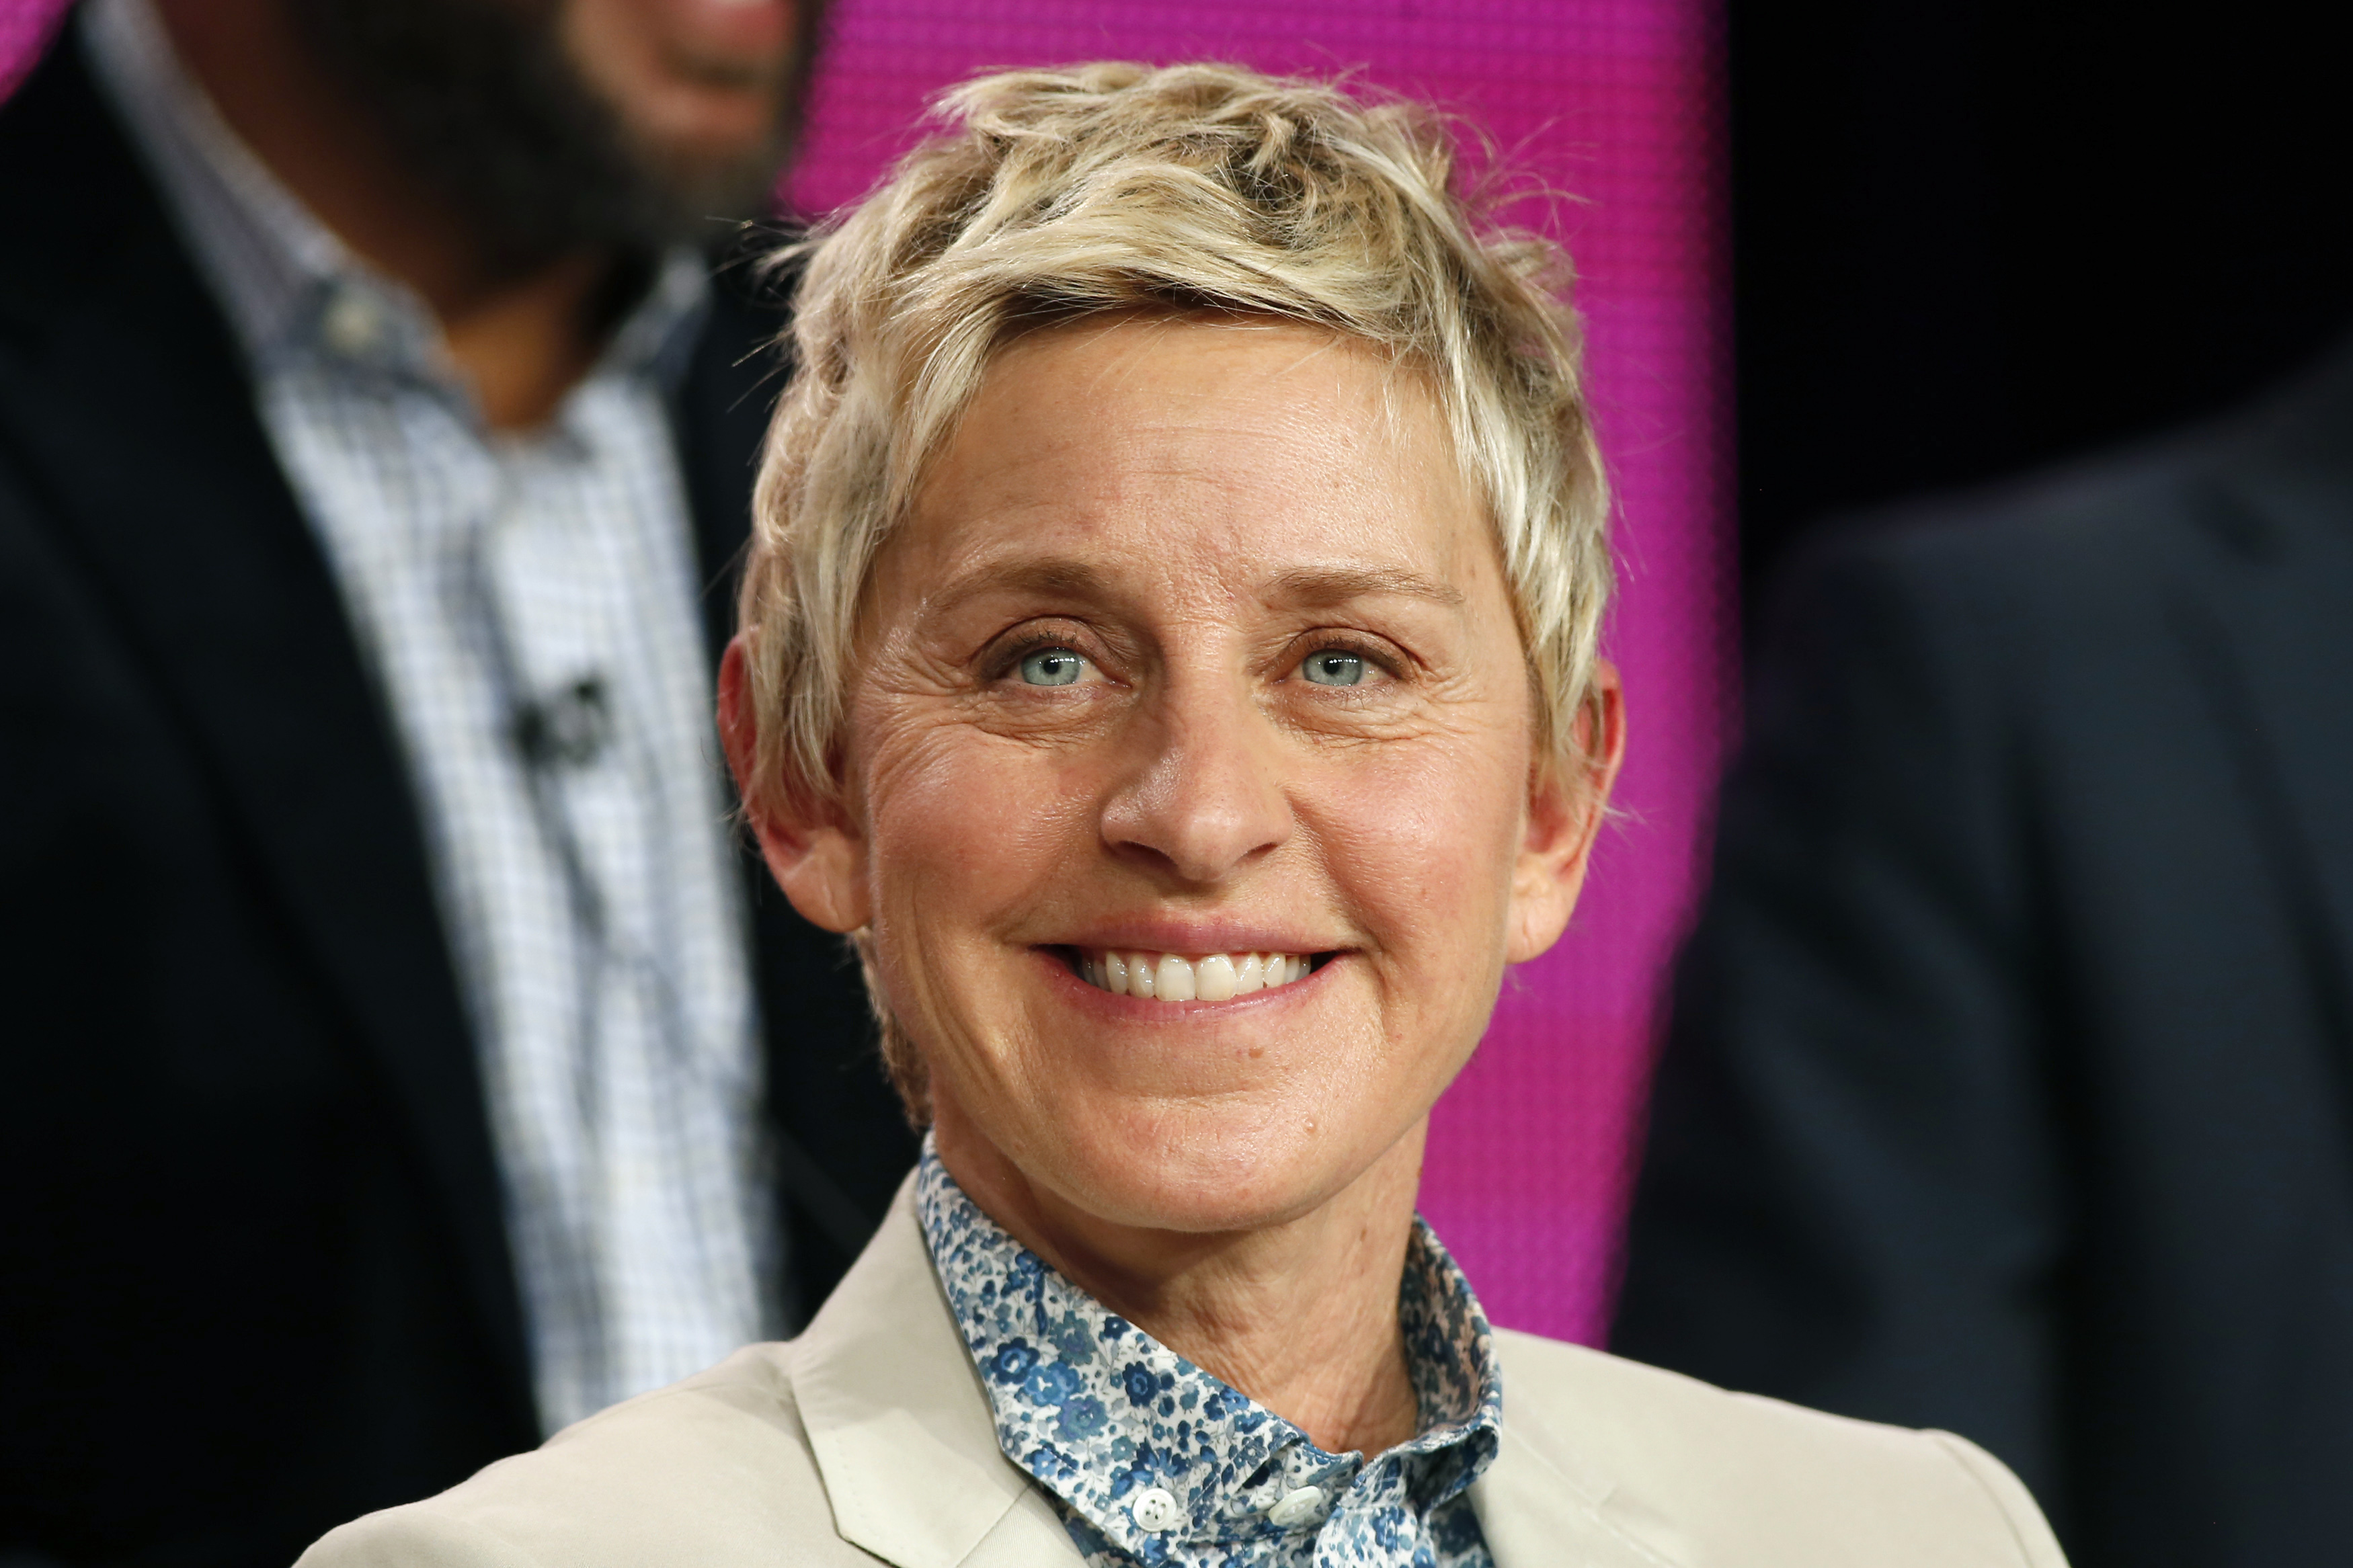 Executive Producer Ellen DeGeneres speaks about the NBC television show  One Big Happy  during the TCA presentations in Pasadena, California, January 16, 2015